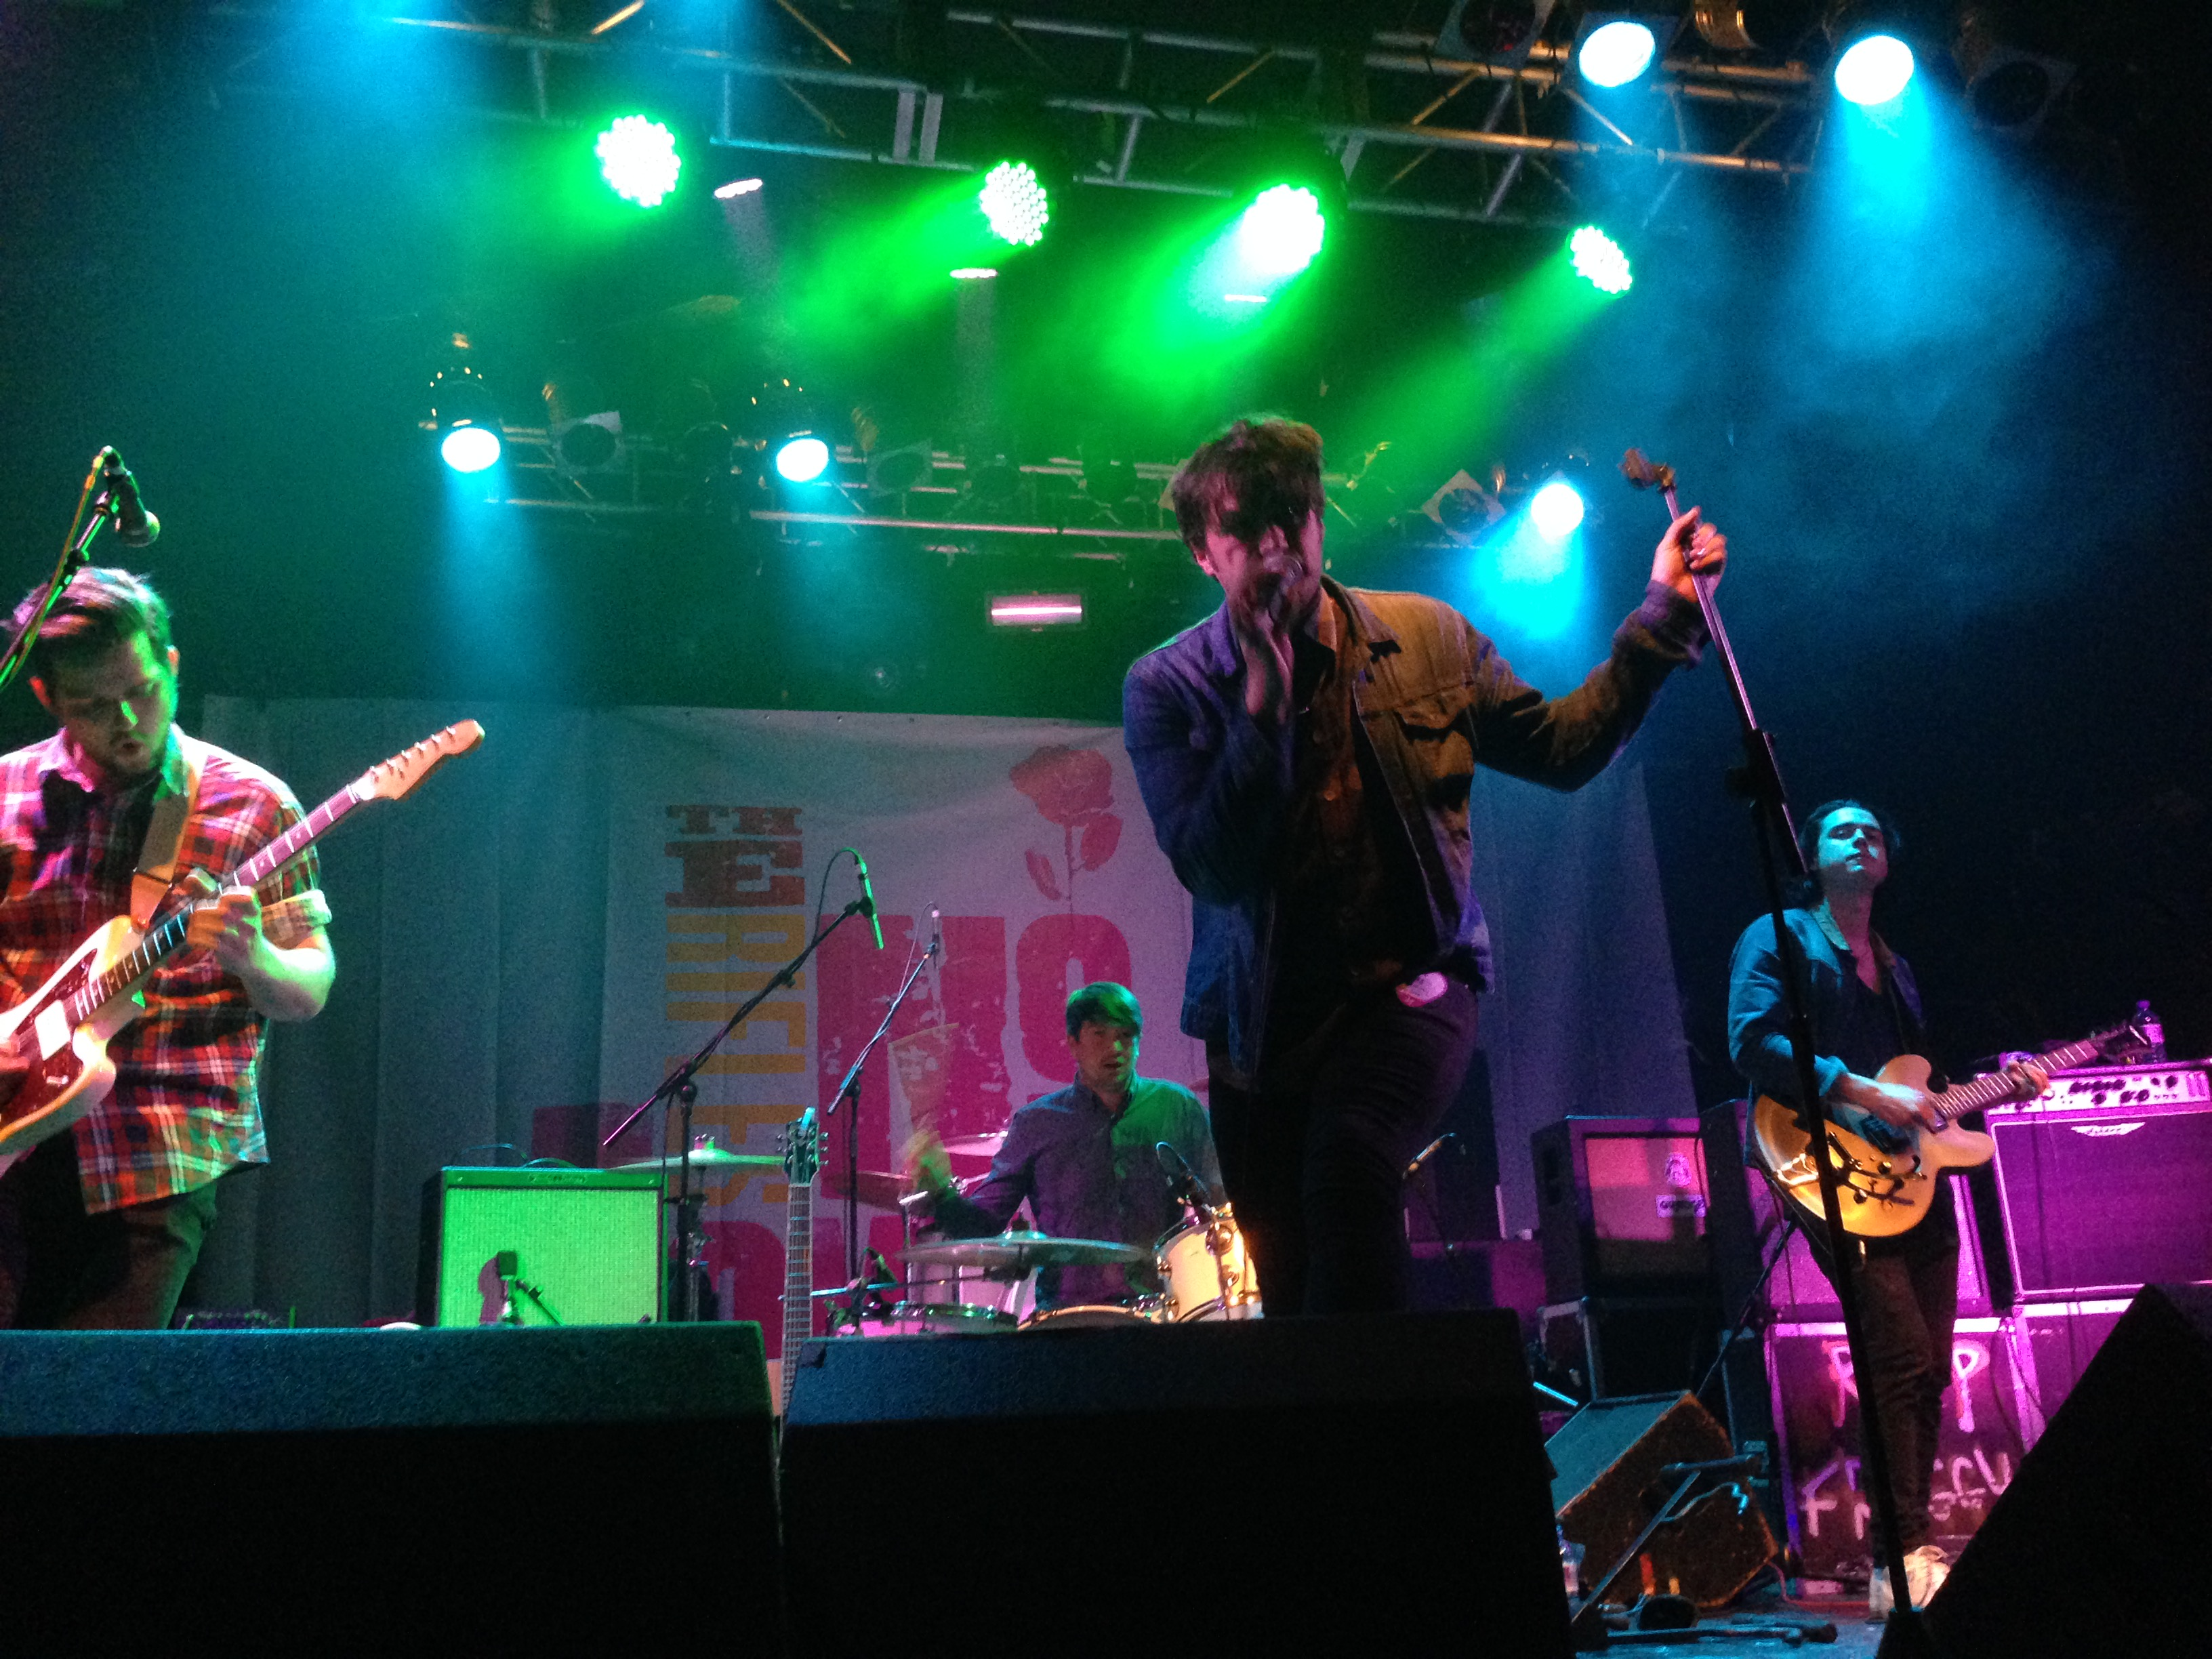 187 Live Review The Rifles In London Something You Said